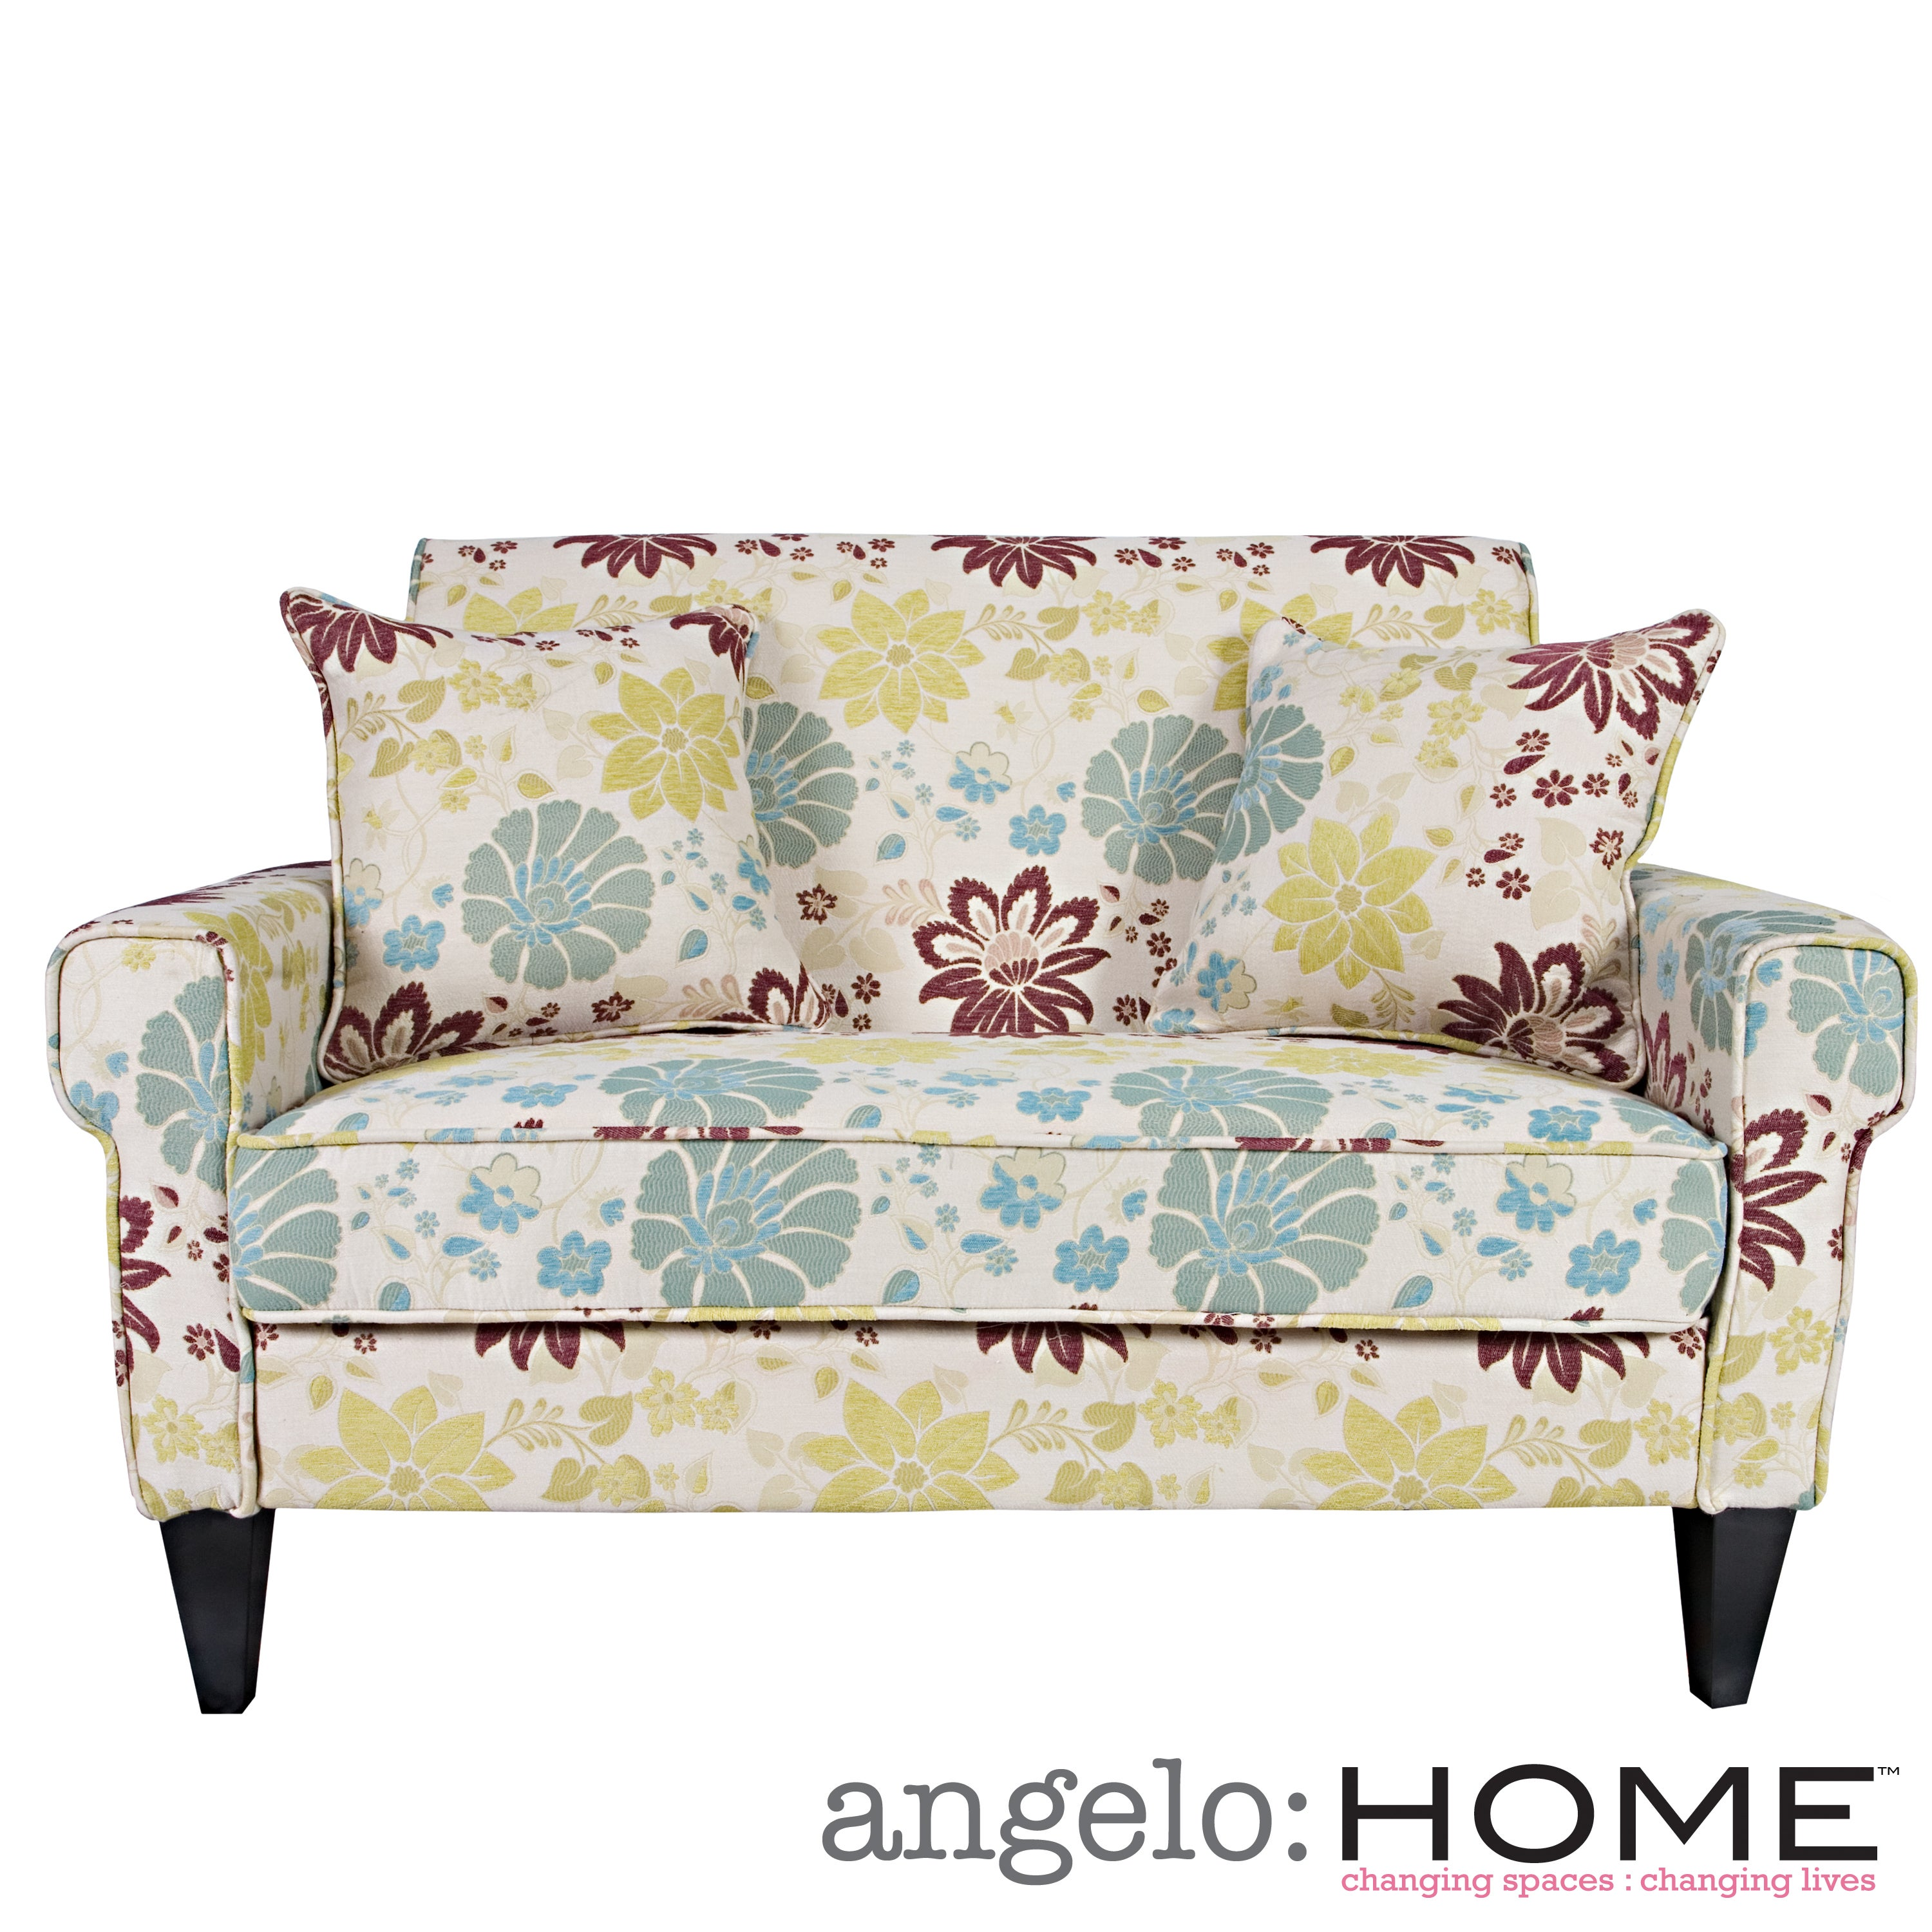 Angelo Home Ennis Spring Sandstone Beige And Blue Floral Loveseat Overstock Shopping Great